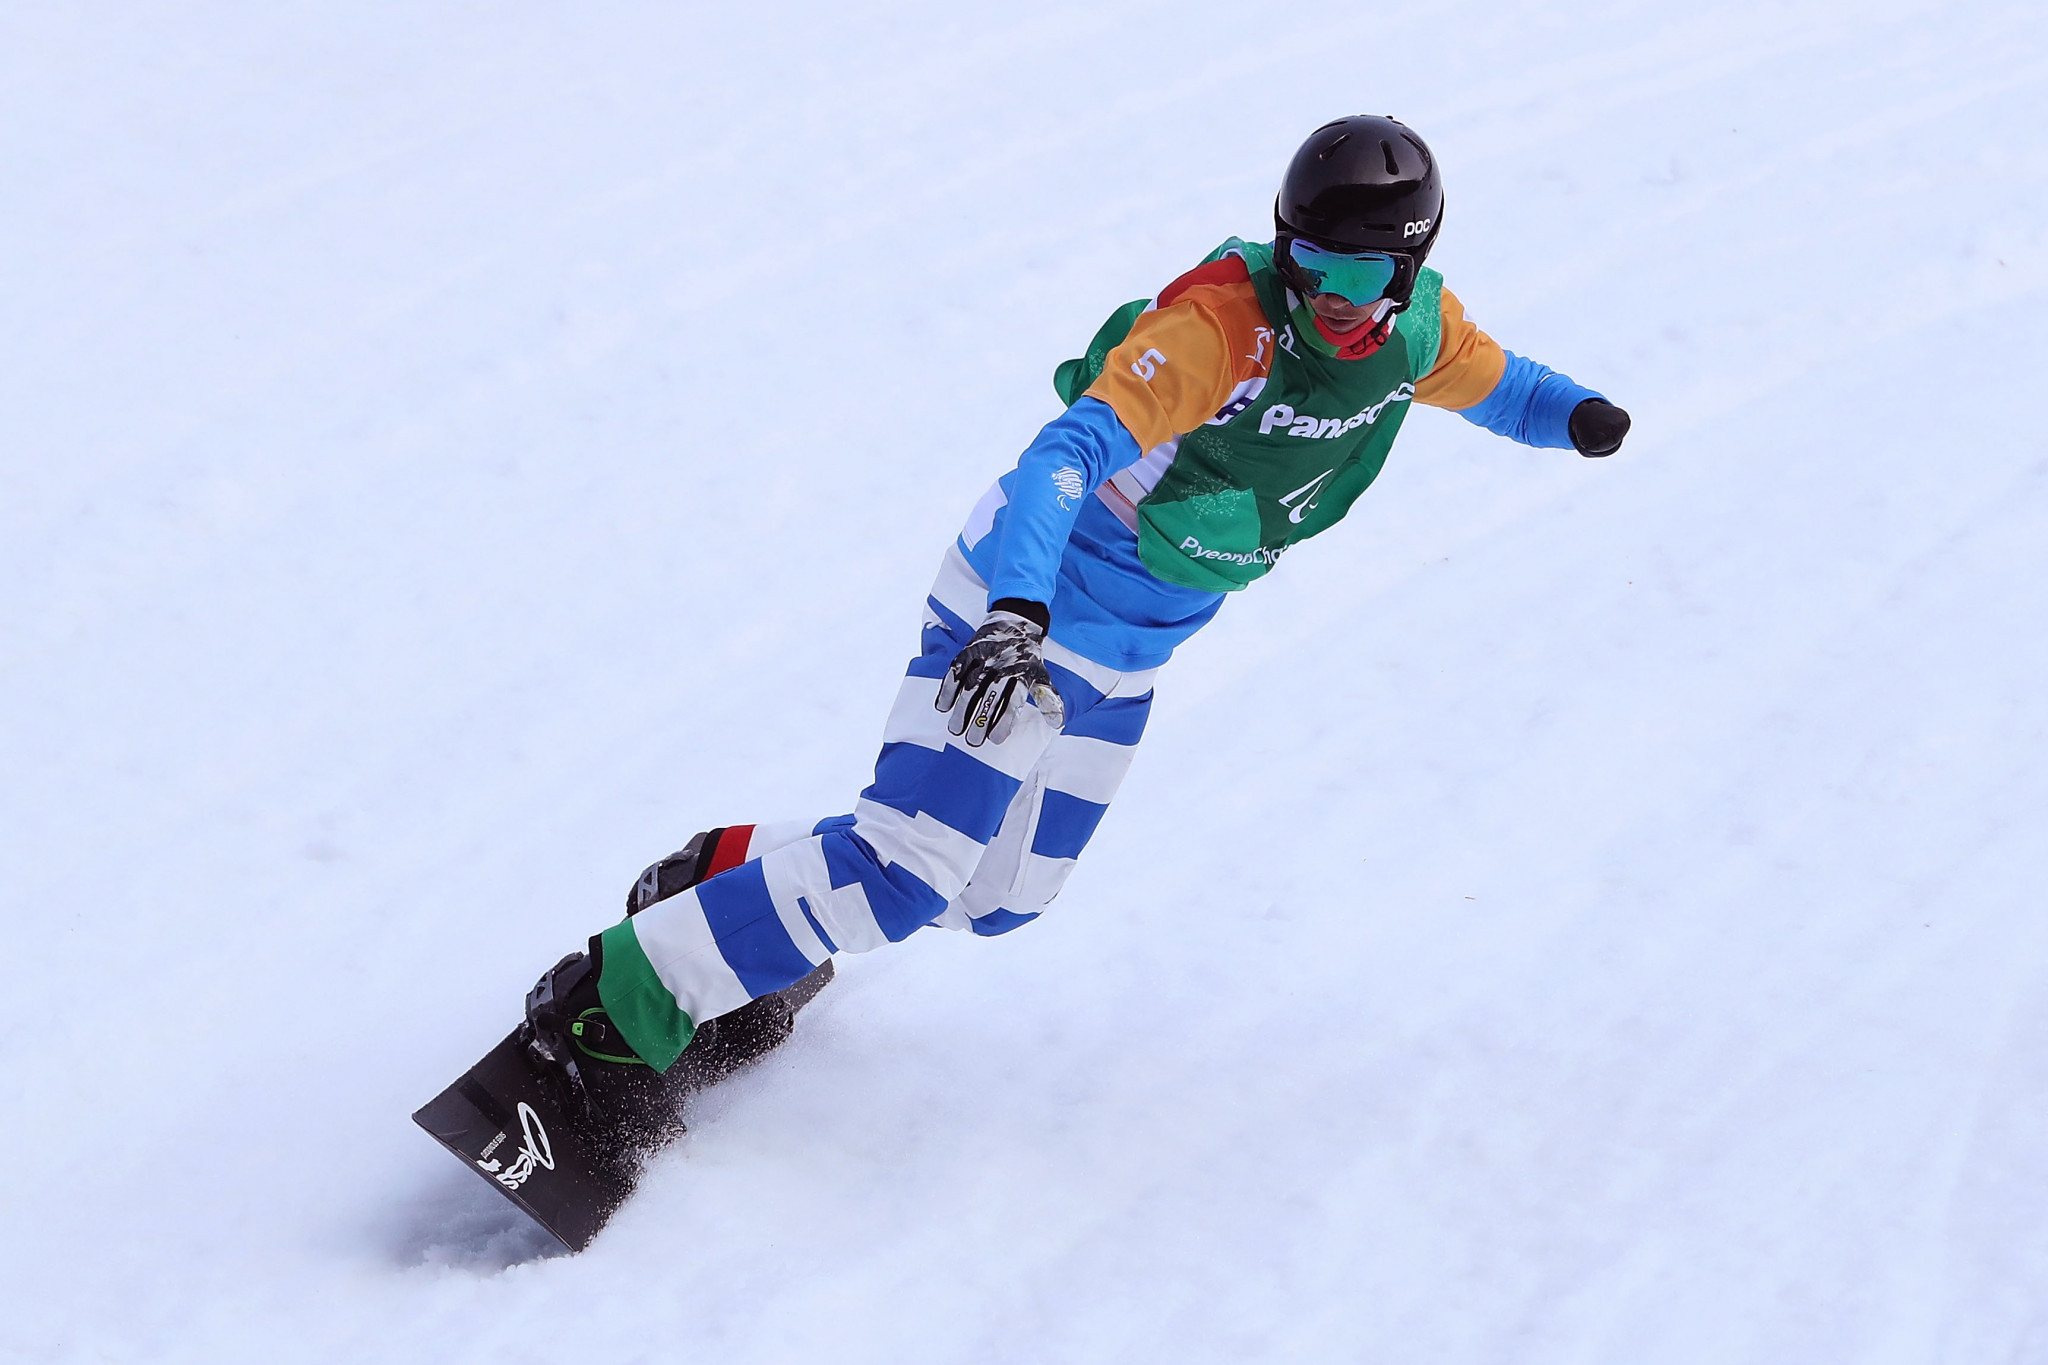 Italy's Luchini targeting World Para Snowboard World Cup Finals glory on home snow